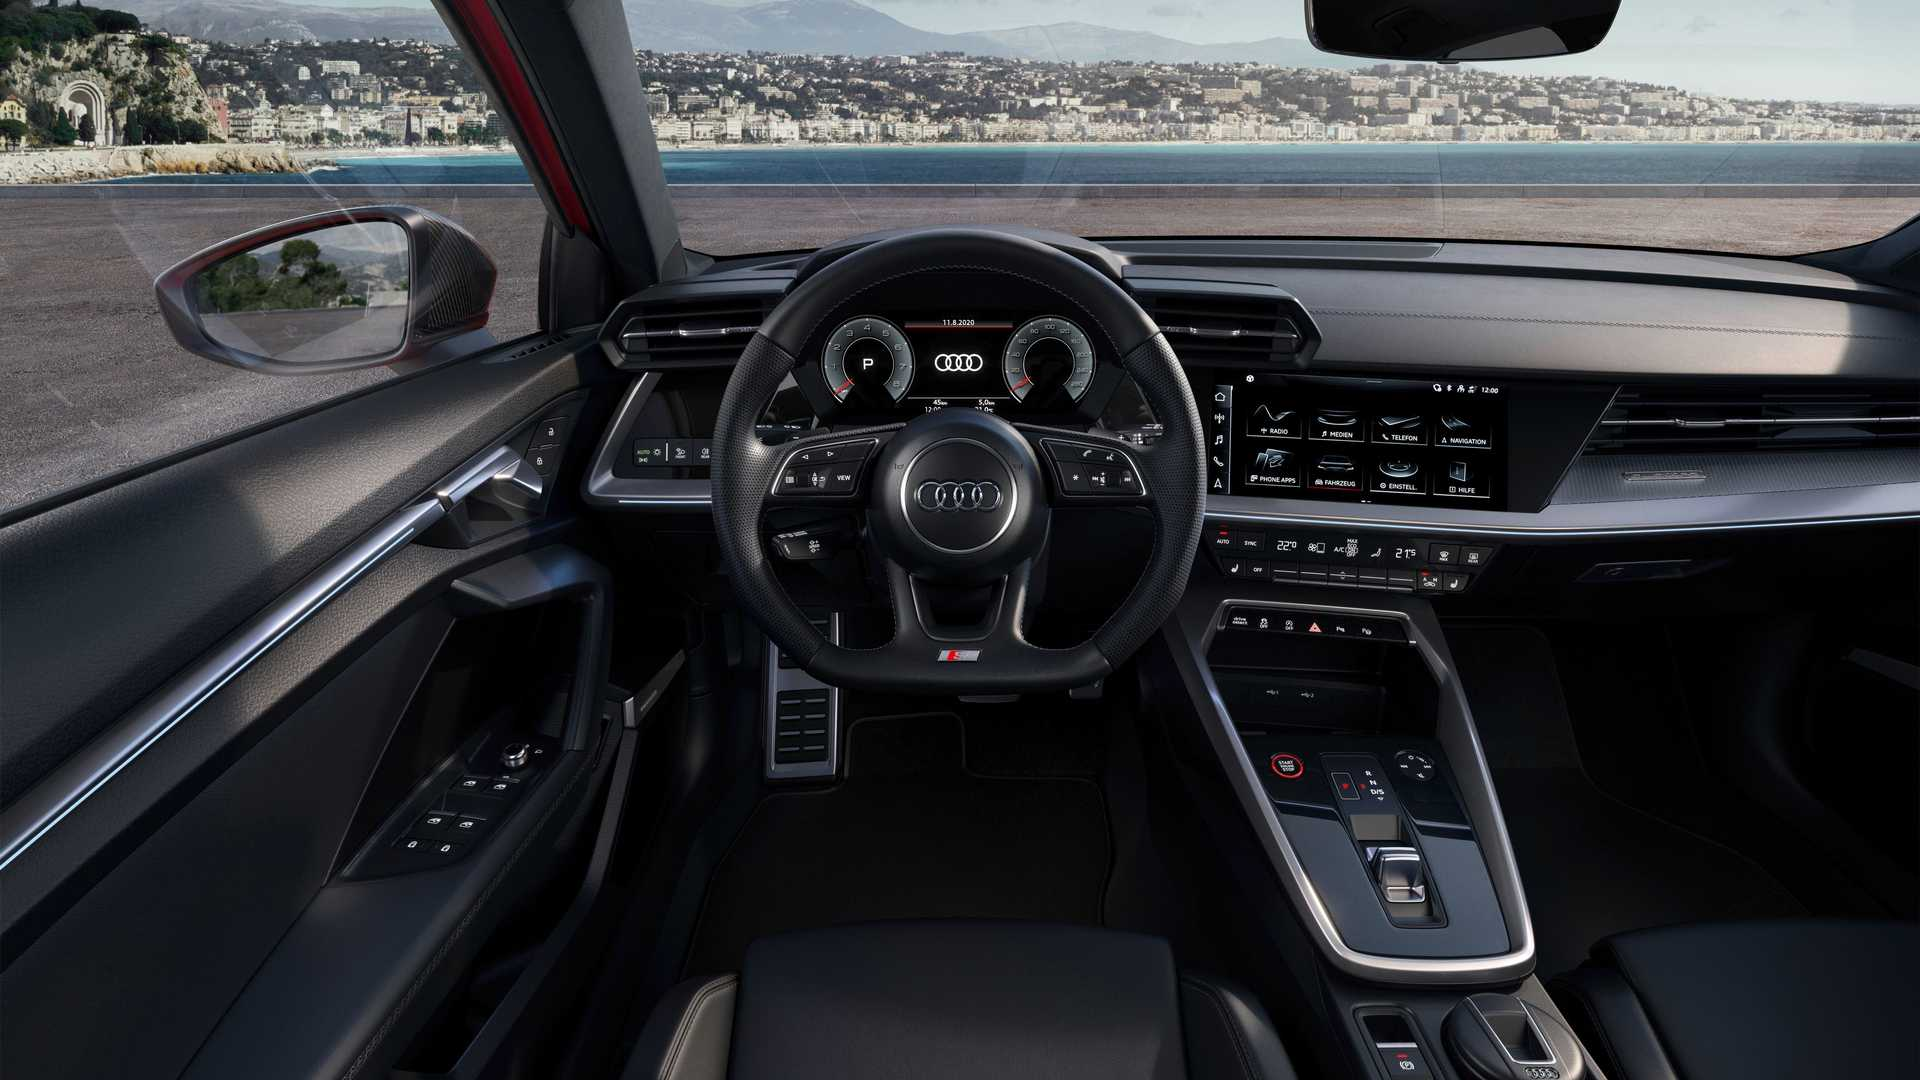 2021 Audi S3 Sportback and Sedan Revealed With 306 HP (228 kW)